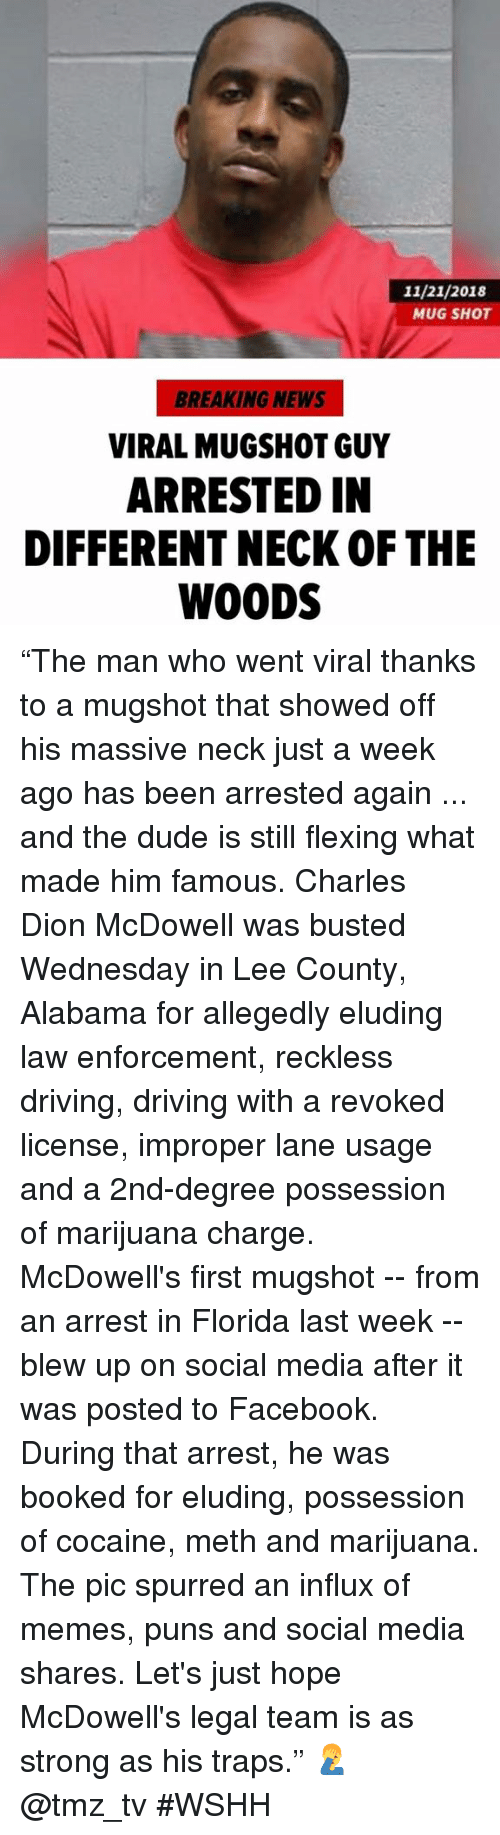 """Allegedly: 11/21/2018  MUG SHOT  BREAKING NEWS  VIRAL MUGSHOT GUY  ARRESTED IN  DIFFERENT NECK OF THE  WOODS """"The man who went viral thanks to a mugshot that showed off his massive neck just a week ago has been arrested again ... and the dude is still flexing what made him famous. Charles Dion McDowell was busted Wednesday in Lee County, Alabama for allegedly eluding law enforcement, reckless driving, driving with a revoked license, improper lane usage and a 2nd-degree possession of marijuana charge. McDowell's first mugshot -- from an arrest in Florida last week -- blew up on social media after it was posted to Facebook. During that arrest, he was booked for eluding, possession of cocaine, meth and marijuana. The pic spurred an influx of memes, puns and social media shares. Let's just hope McDowell's legal team is as strong as his traps."""" 🤦♂️ @tmz_tv #WSHH"""